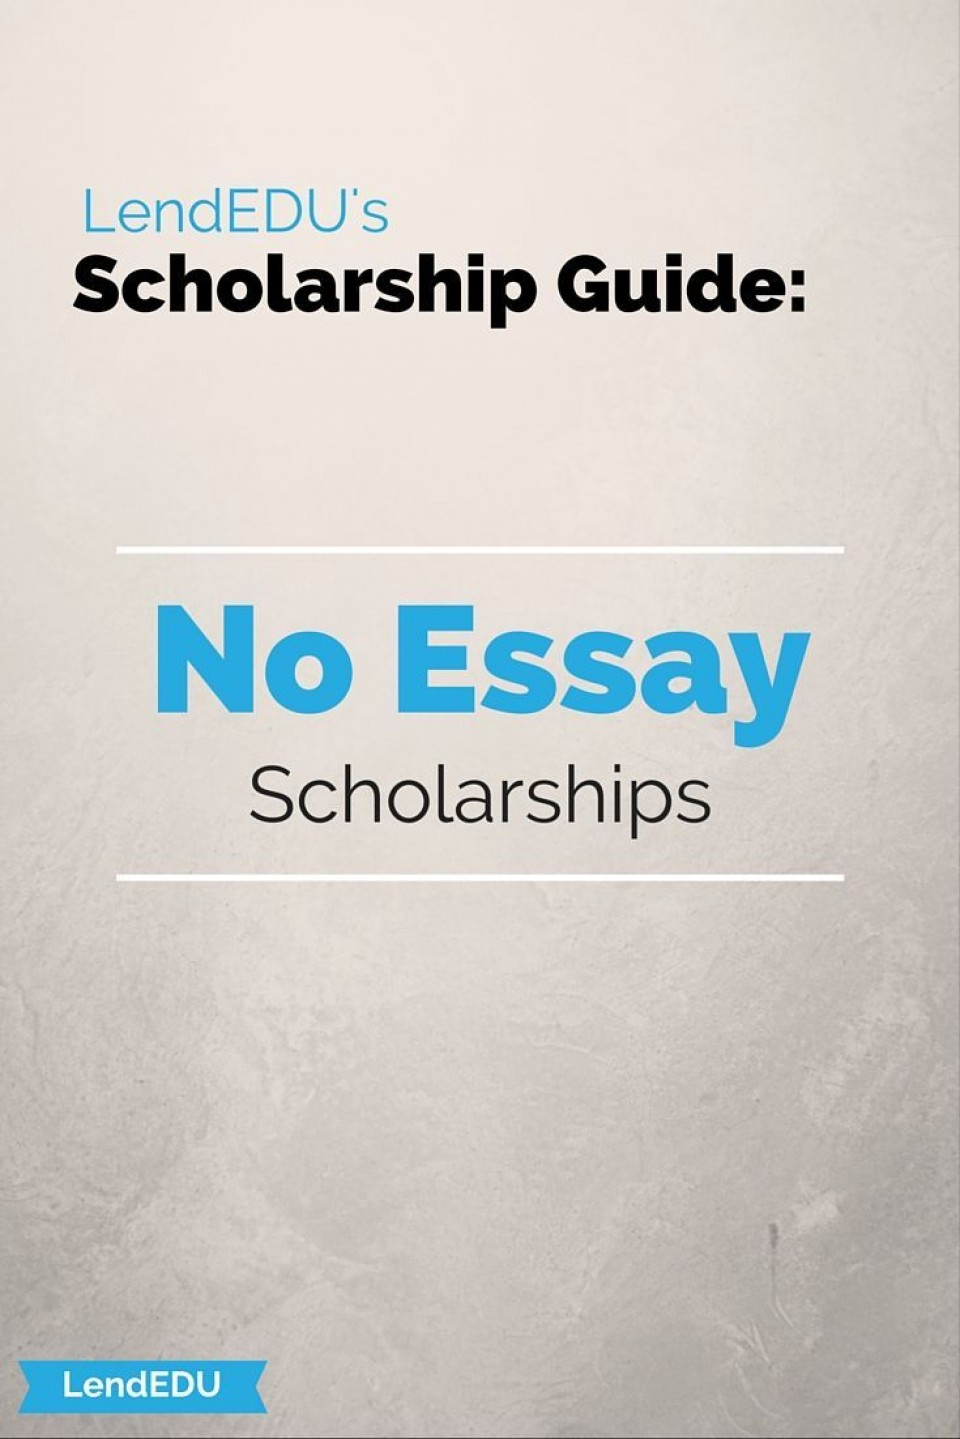 018 No Essay Scholarships Example Exceptional For Undergraduates High School Seniors College Students 2019 960